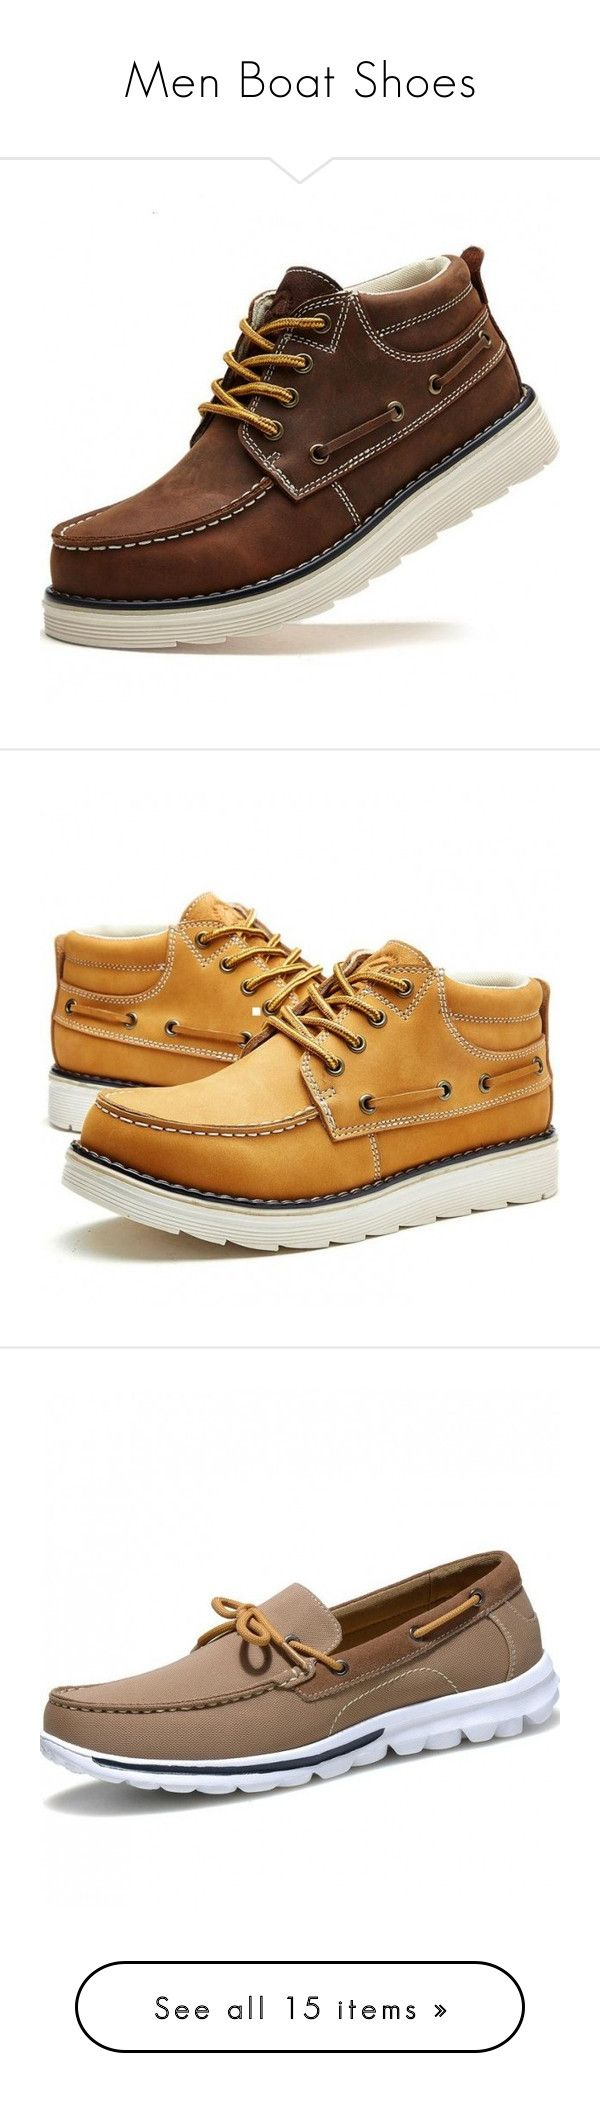 """Men Boat Shoes"" by yestn ❤ liked on Polyvore featuring shoes, men's fashion, men's shoes, men's boots, men's work boots, men's loafers, mens canvas deck shoes, mens sperry topsiders, mens canvas boat shoes and mens boat shoes"